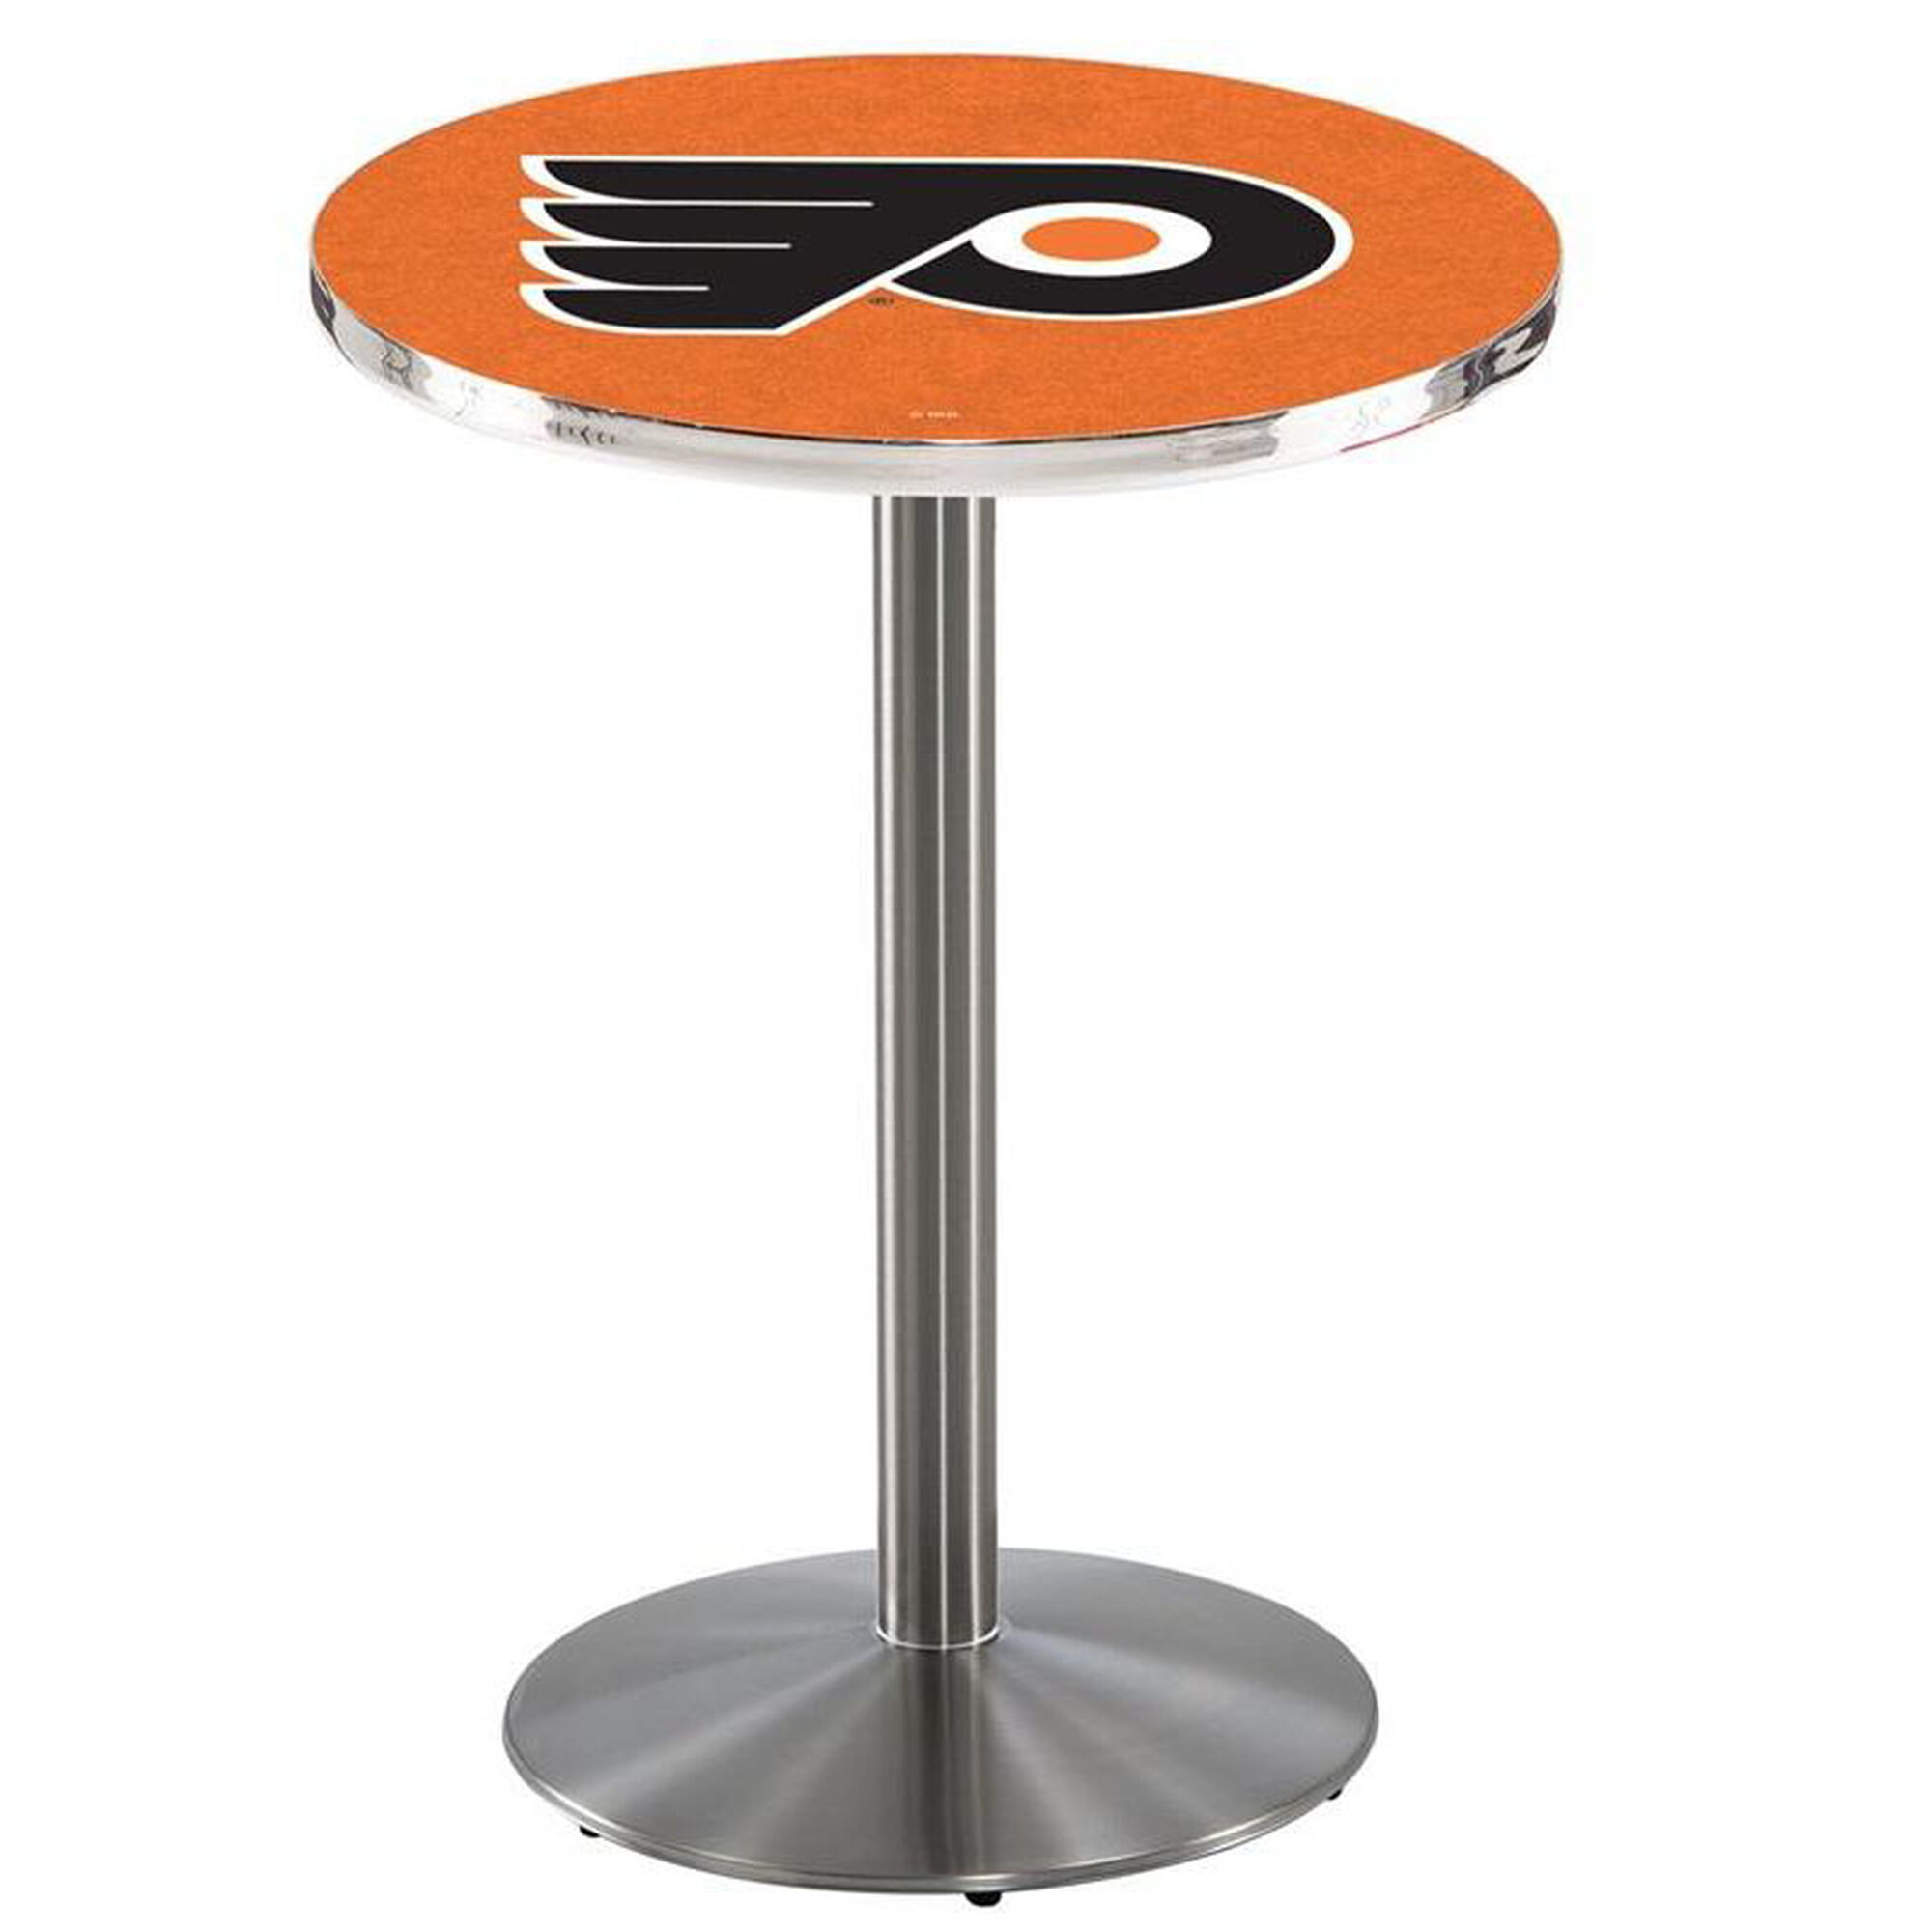 Nhl Stainless Finish Pub Table L214s42phifly O Bizchair Com